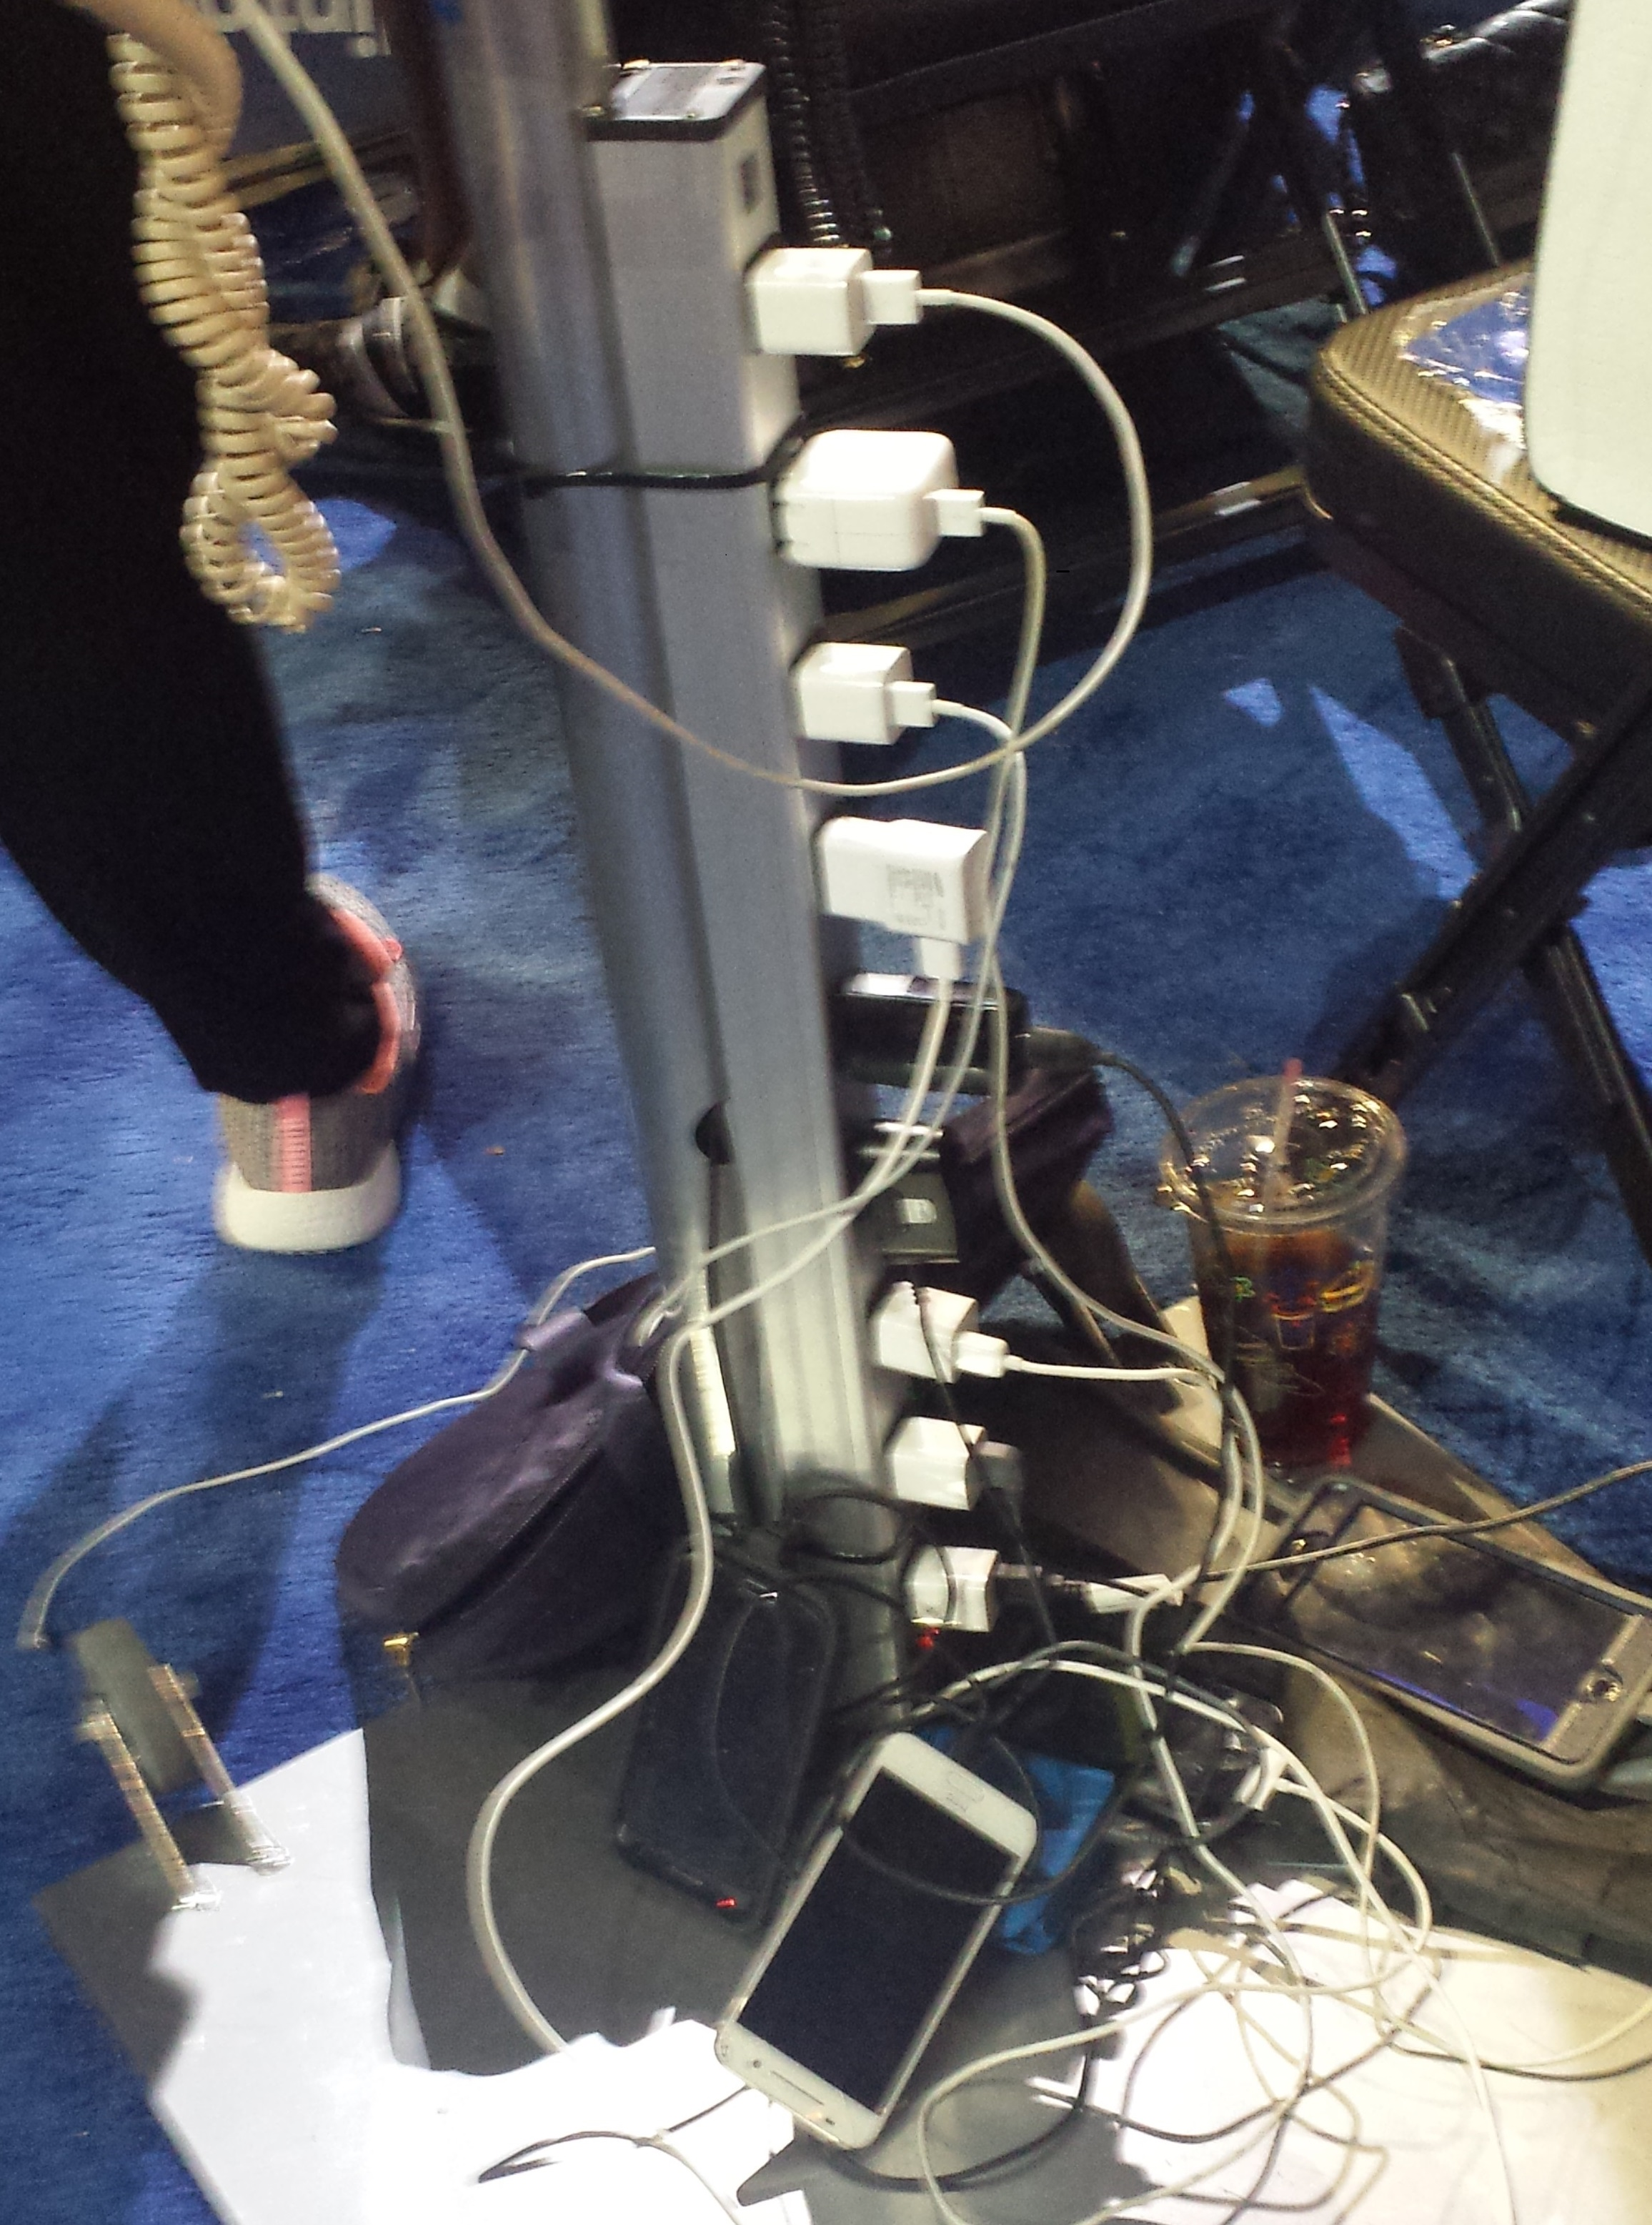 The overtaxed power strip for New York State delegates has people hunting elsewhere for power. (Photo by Mark Poloncarz)